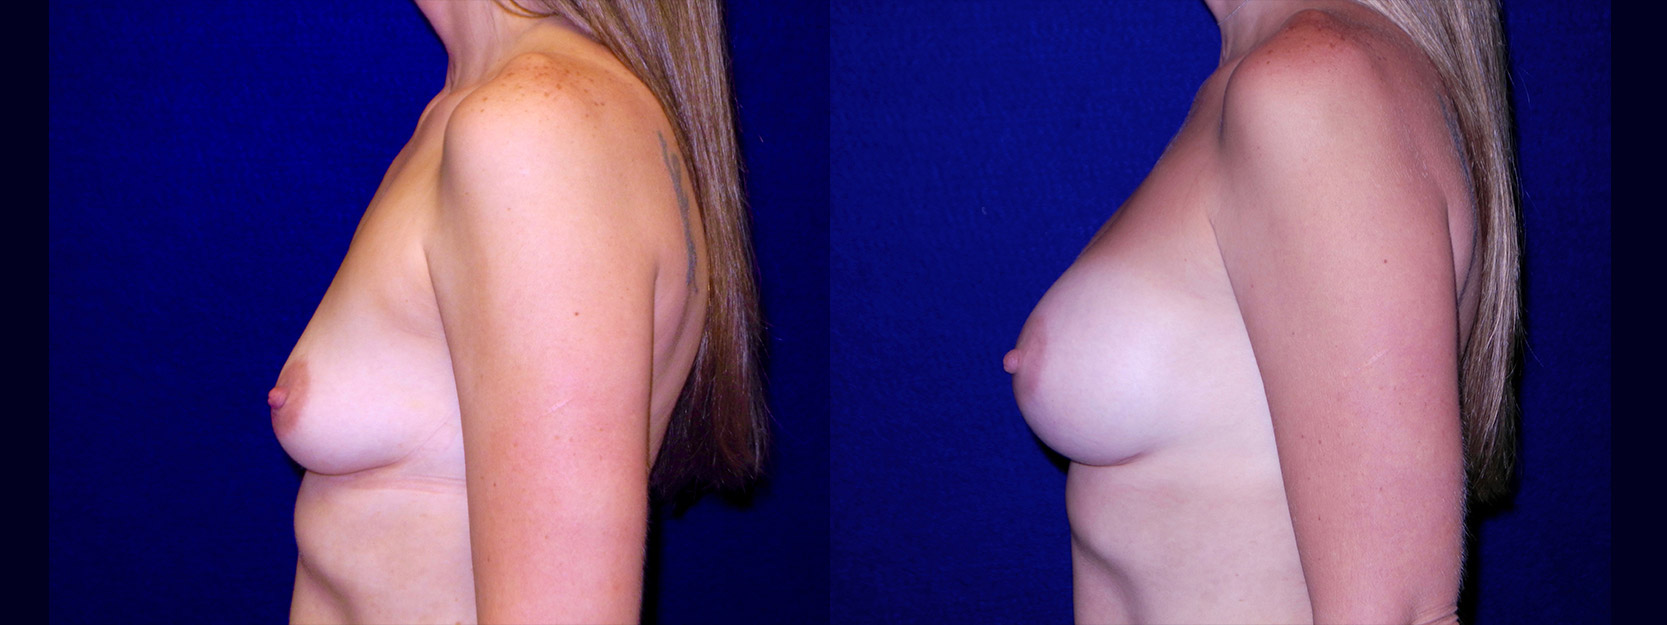 Left Profile View - Breast Augmentation After Pregnancy - Silicone Implants